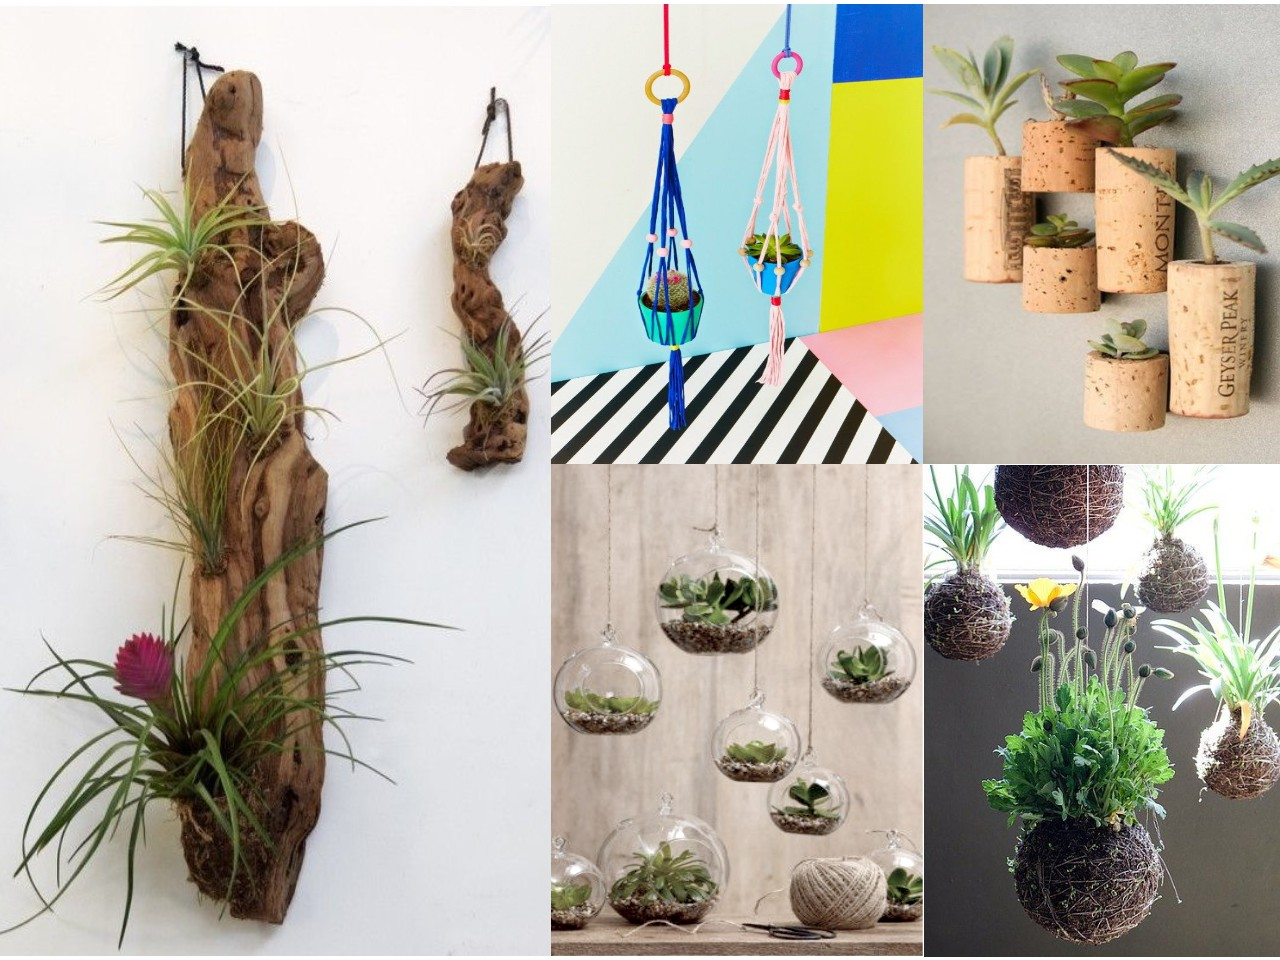 10 ideas de decoraci n con plantas colgantes for Decoracion con plantas para fiestas